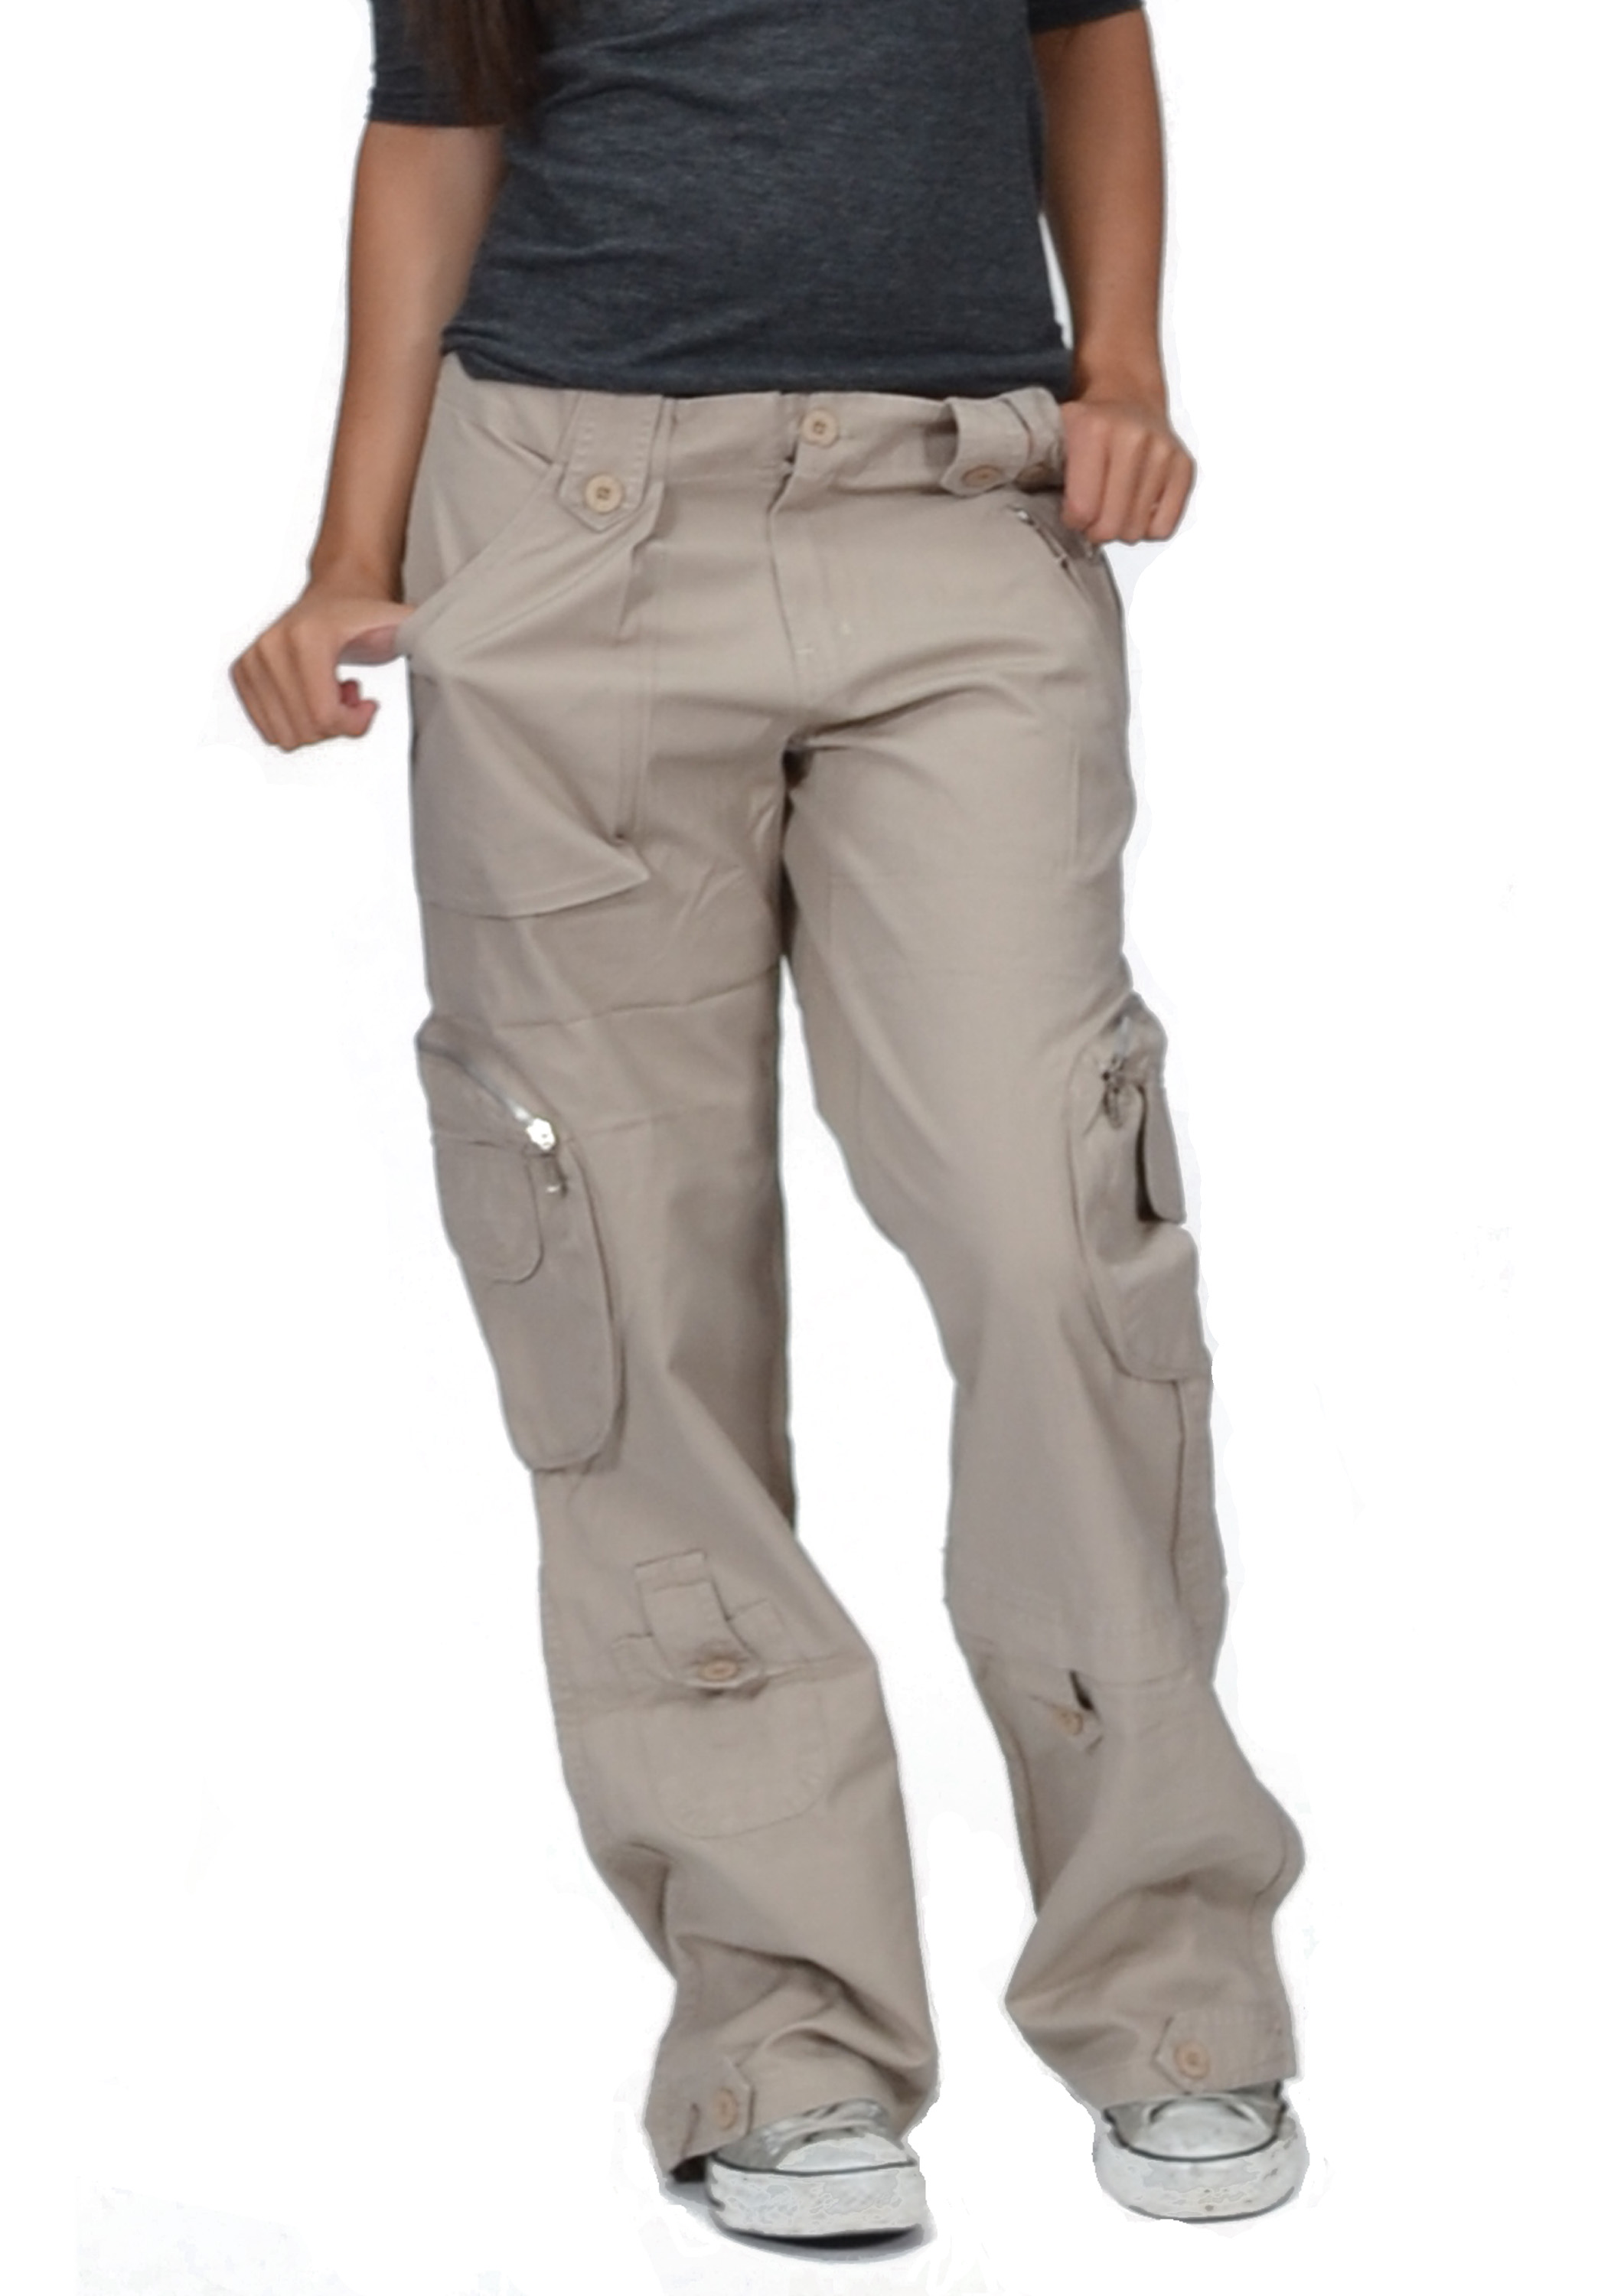 Sears has women's pants. Find a variety of women's pants styles from top brands at Sears.